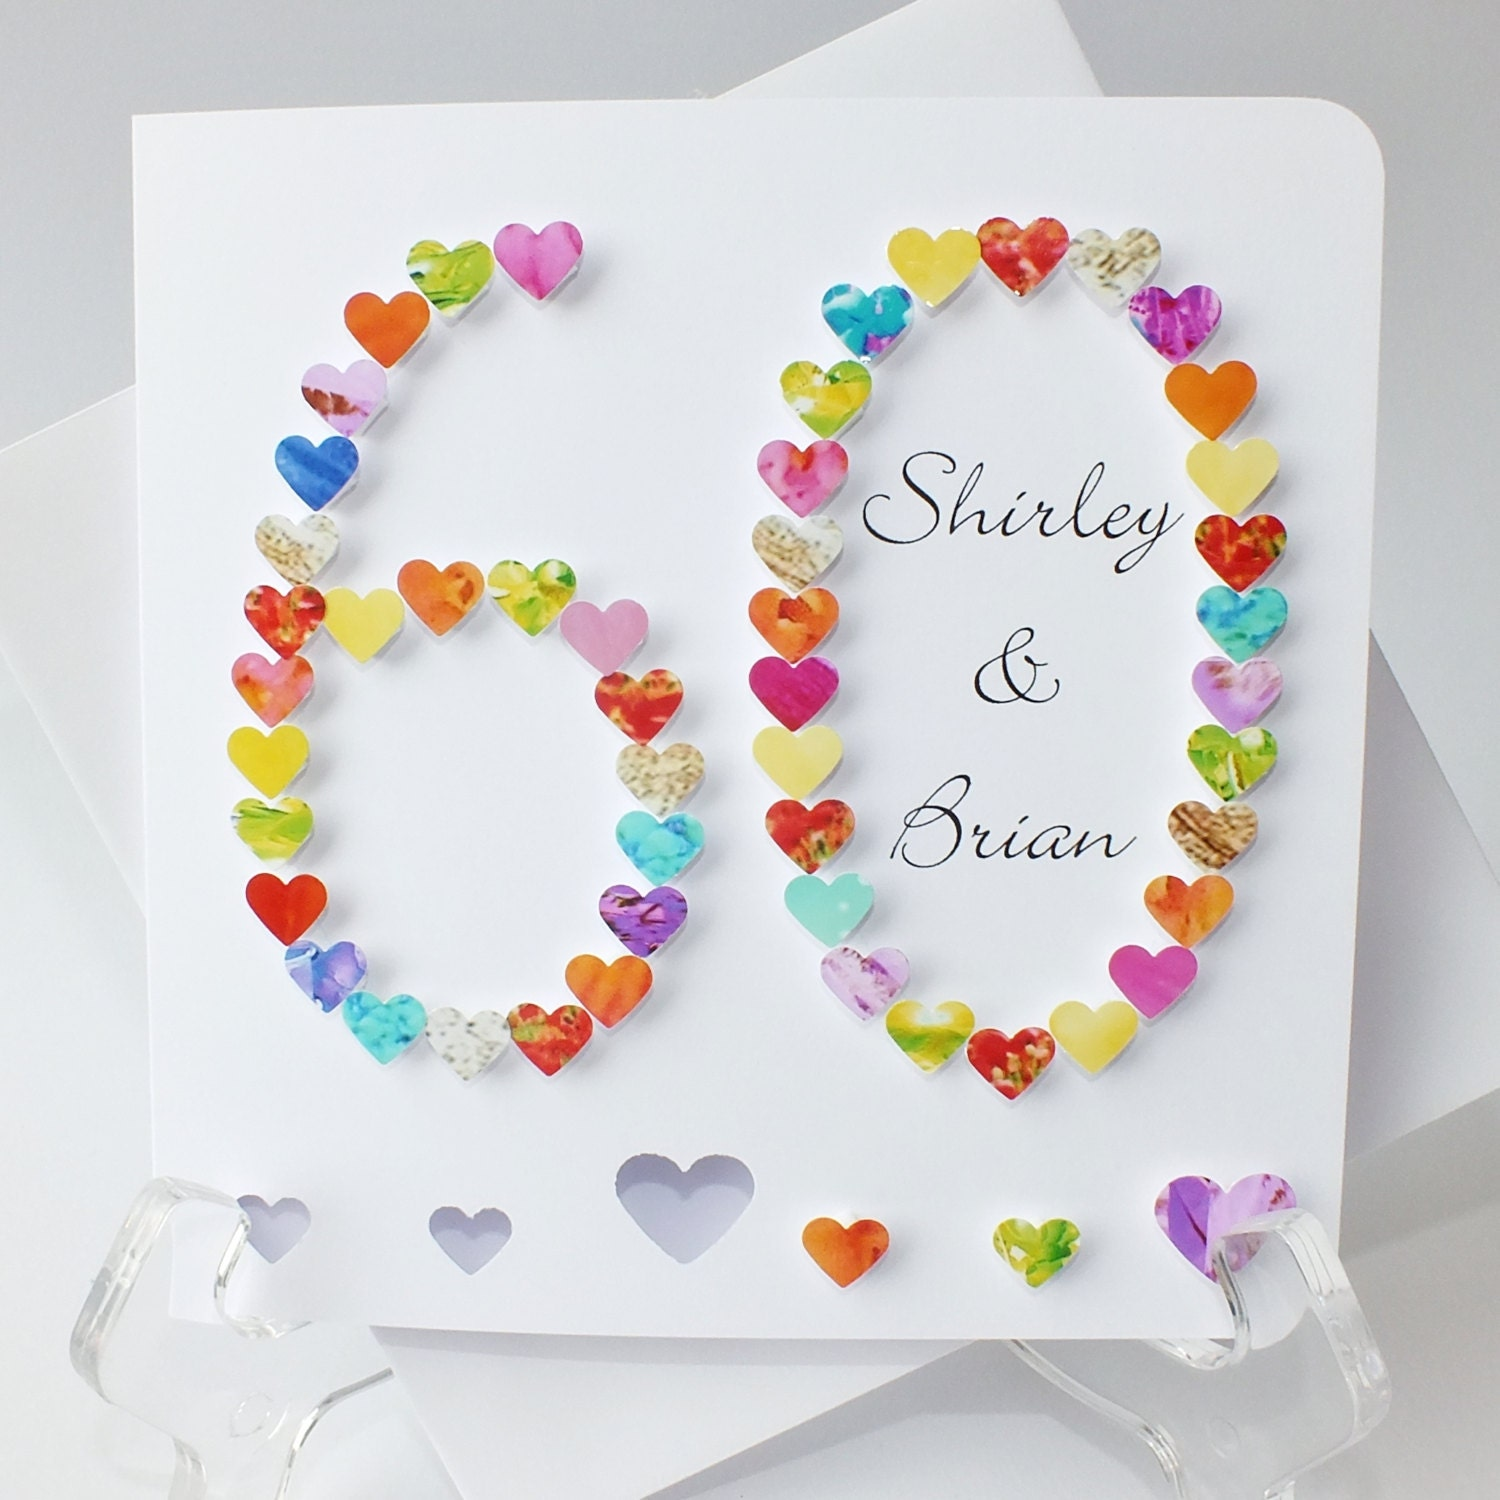 60th wedding anniversary card handmade diamond wedding zoom kristyandbryce Choice Image